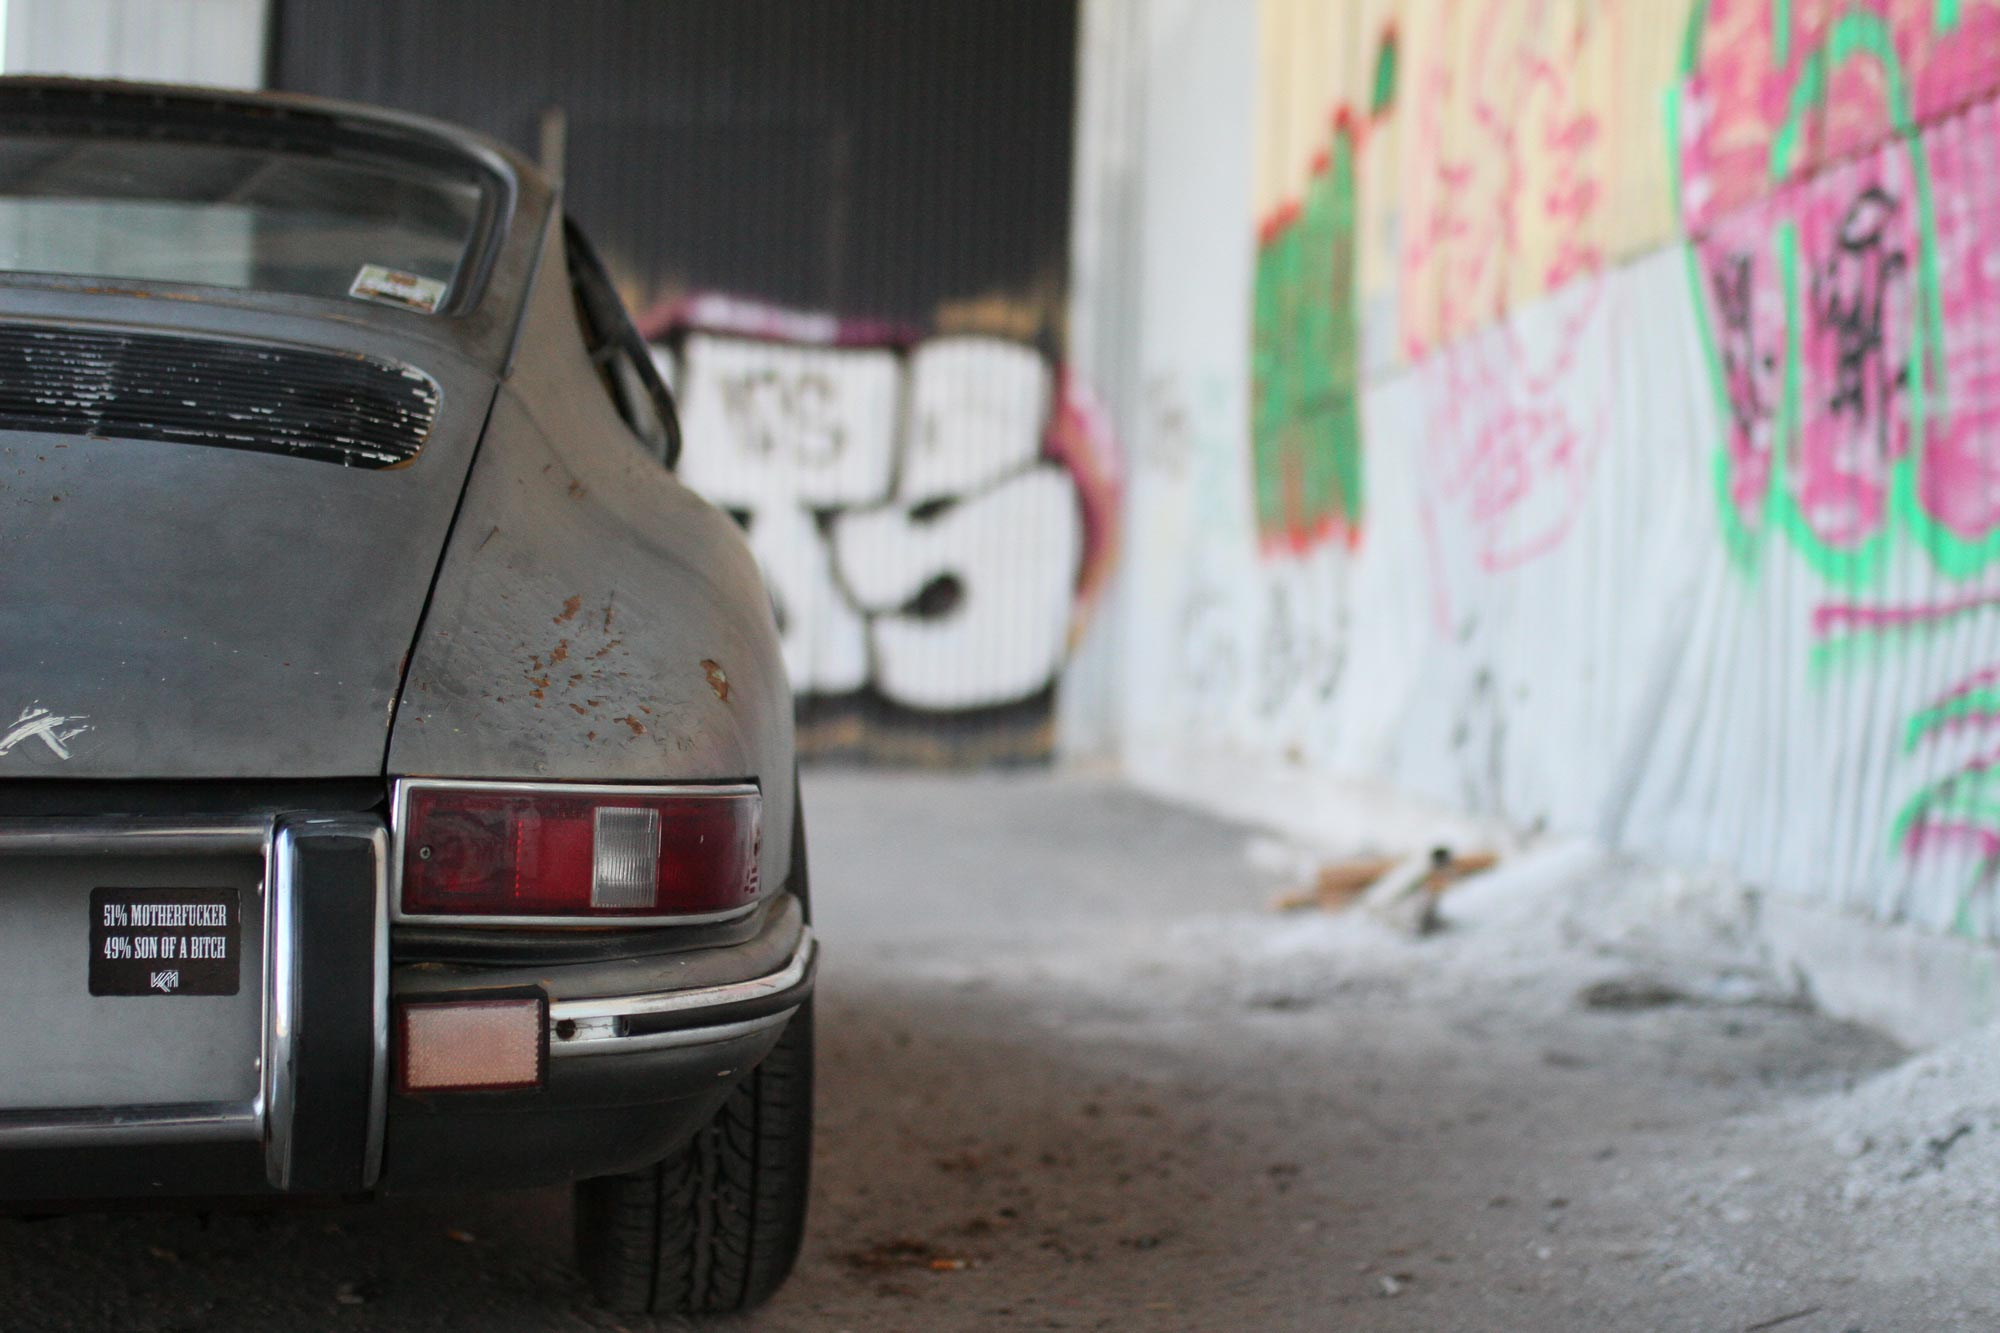 Porsche 912 höger baklampa mes klistermärke - 51% motherfucker - 49% son of a bitch